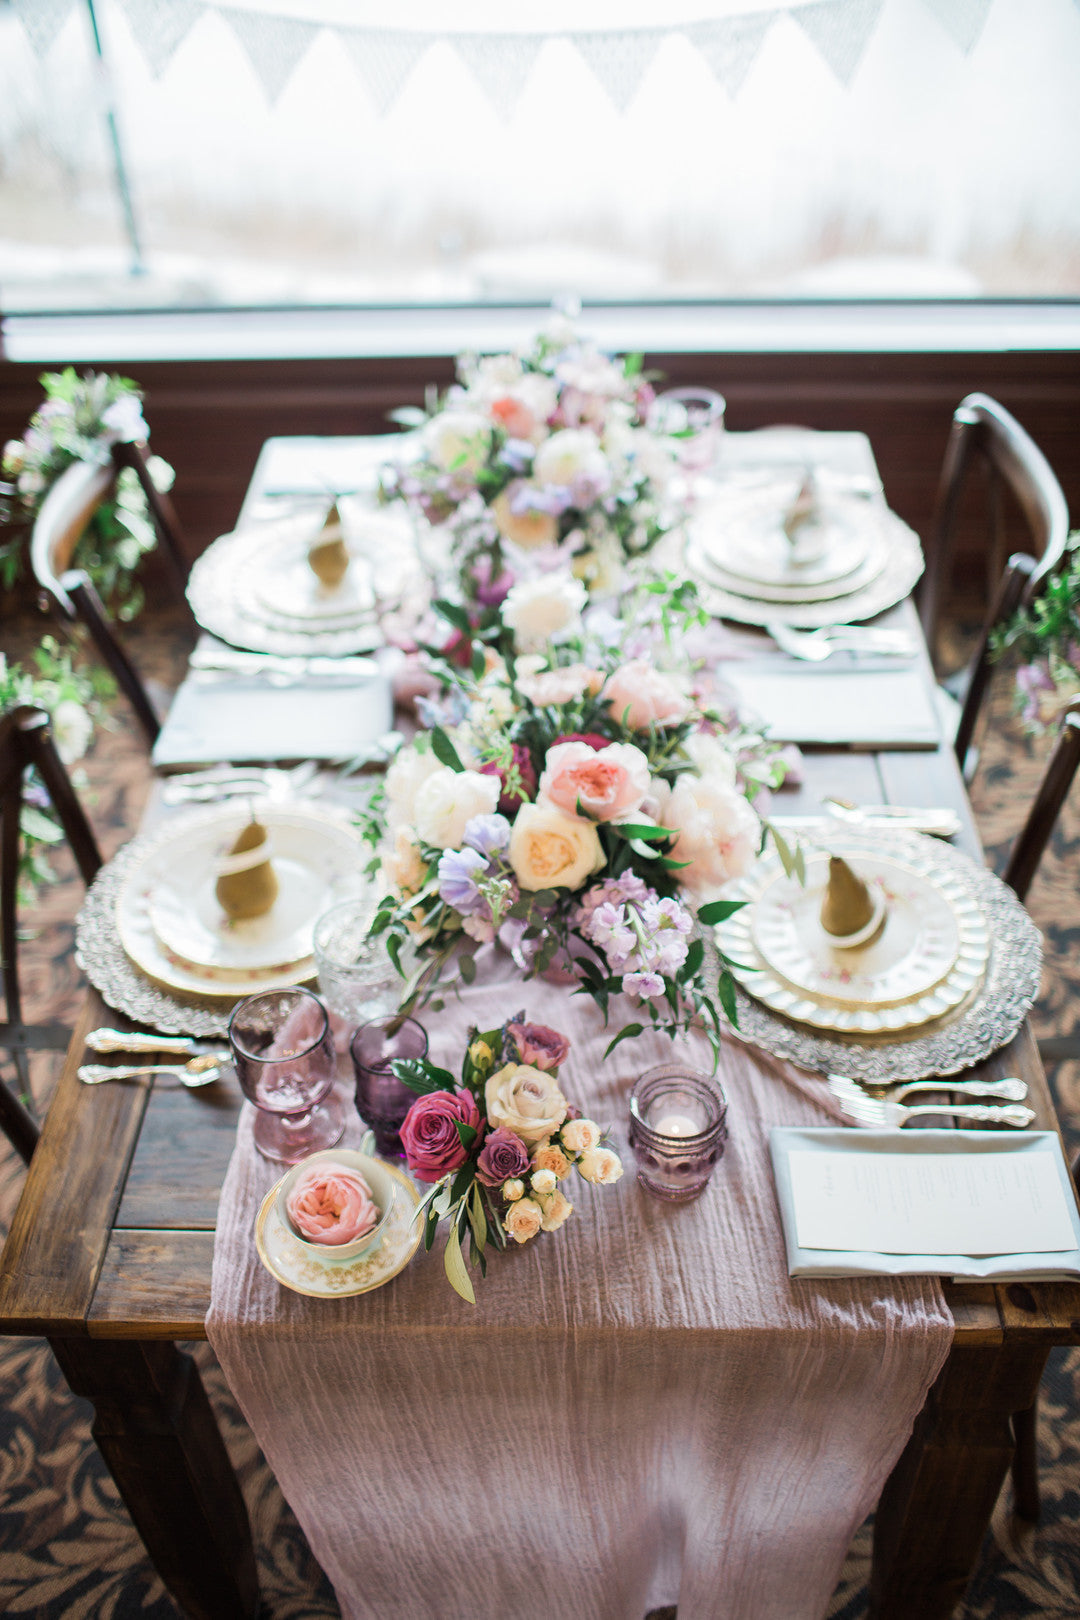 Bridal Shower Table | Tips For the Perfect Floral Bridal Shower | Kate Aspen